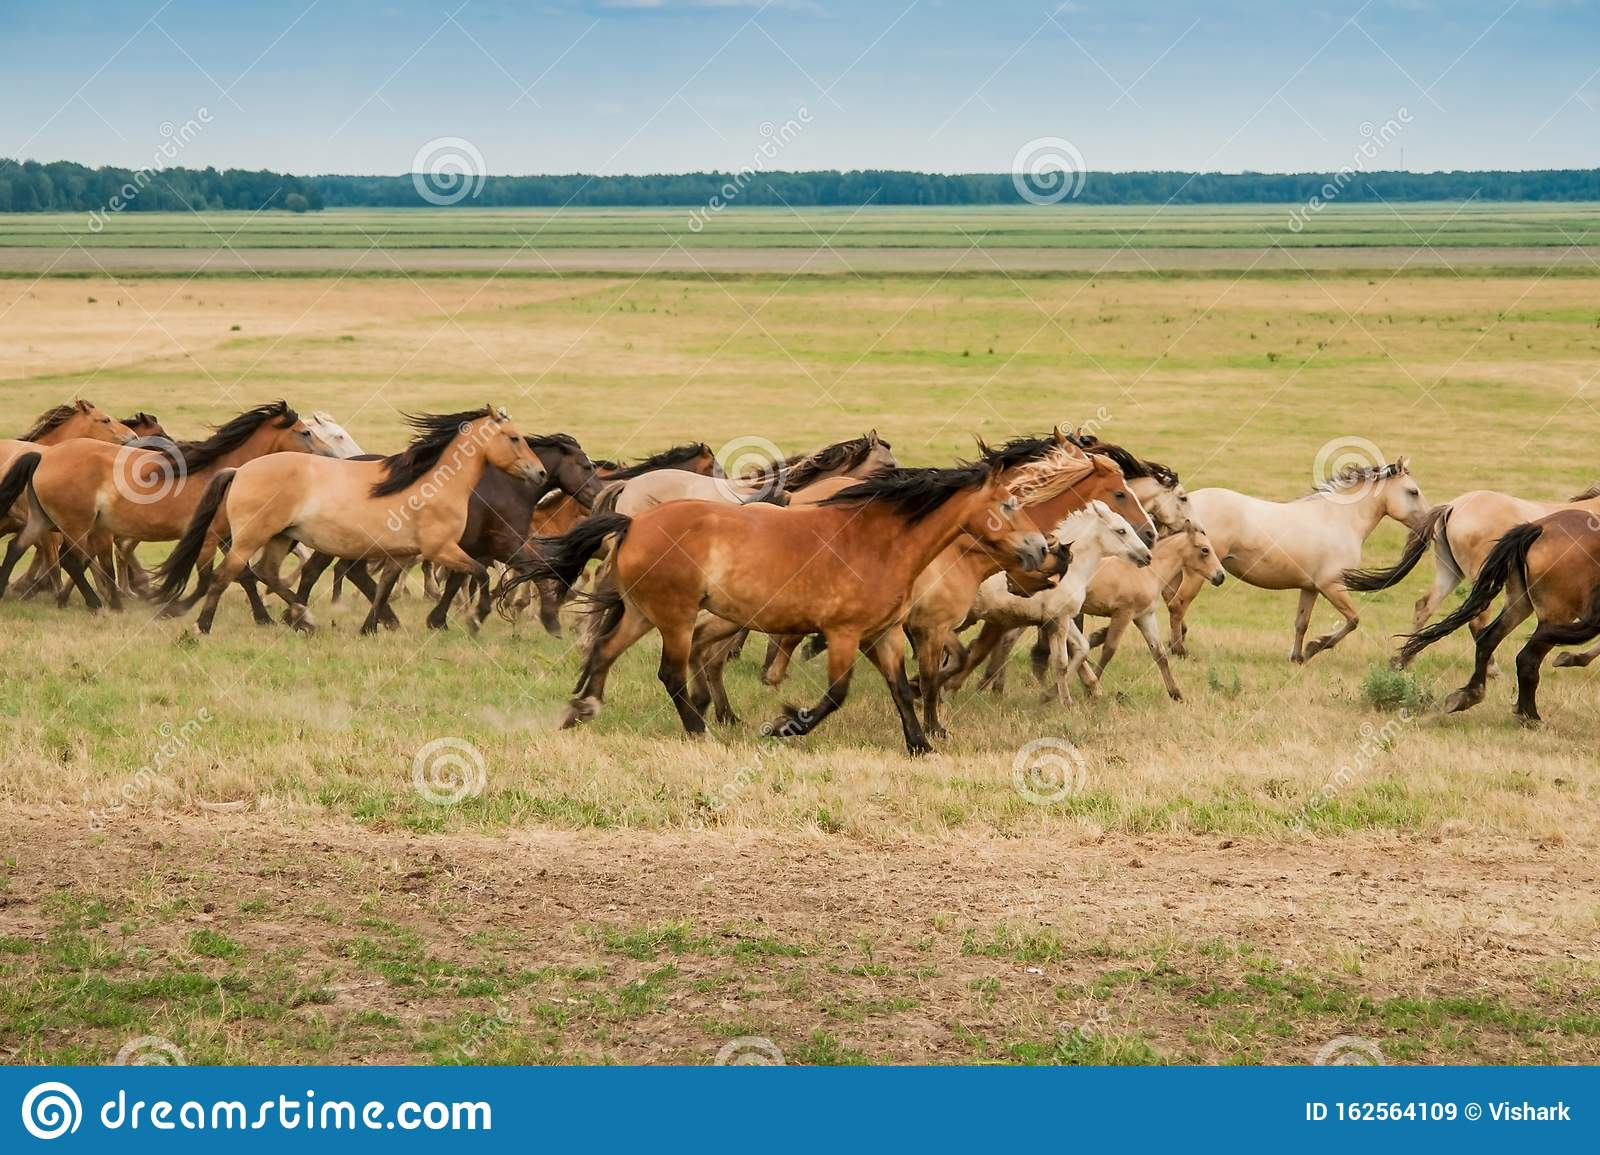 A Herd Of Wild Horses Run Across The Field Stock Image Image Of Equine Mare 162564109